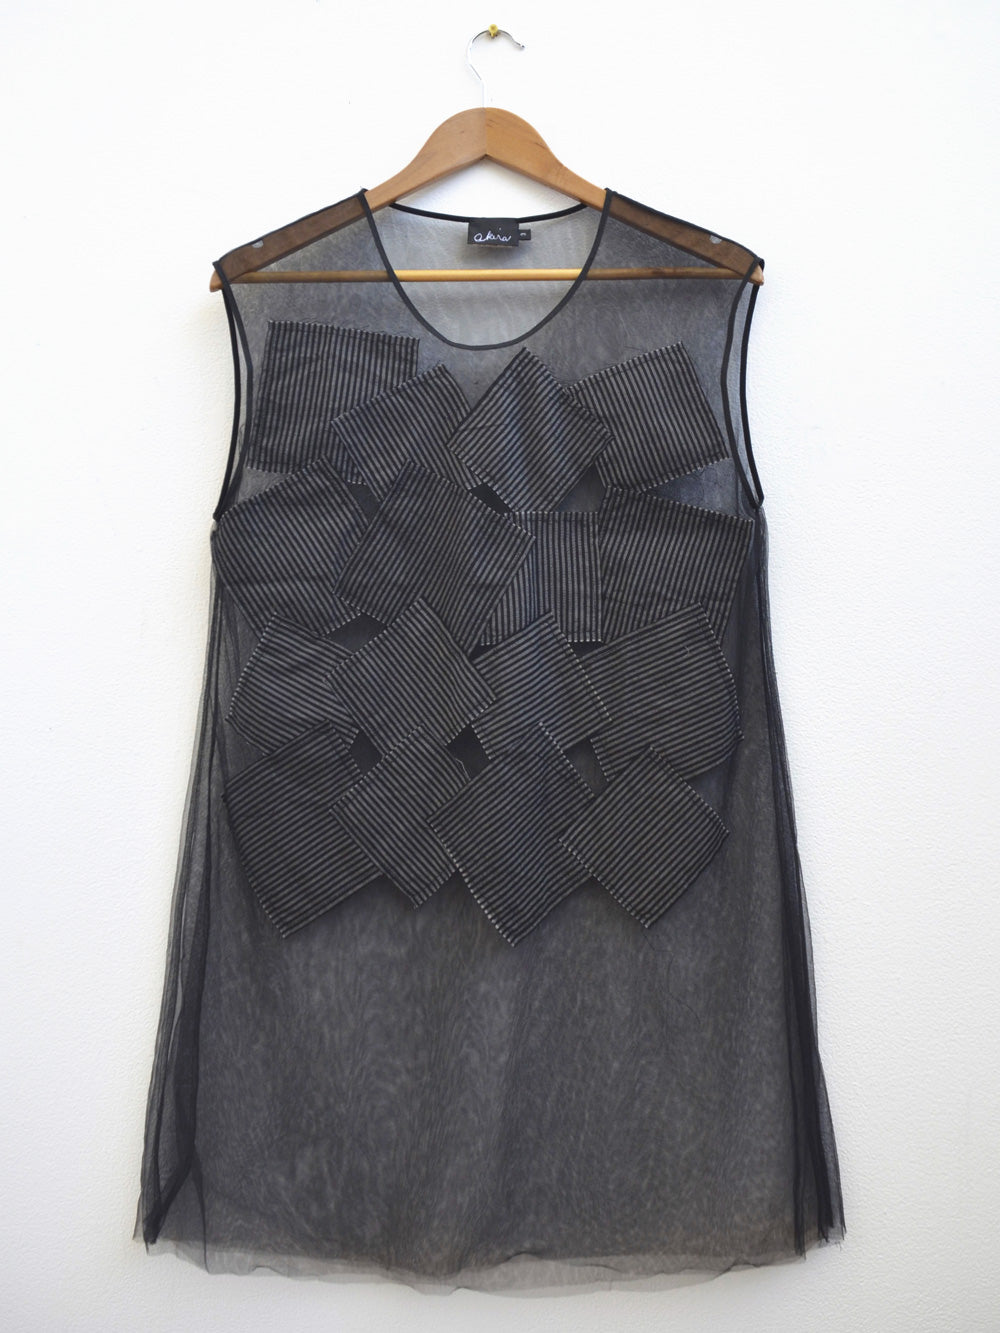 Akira Square Applique Tulle Sleeveless Top Ink 300/S193466